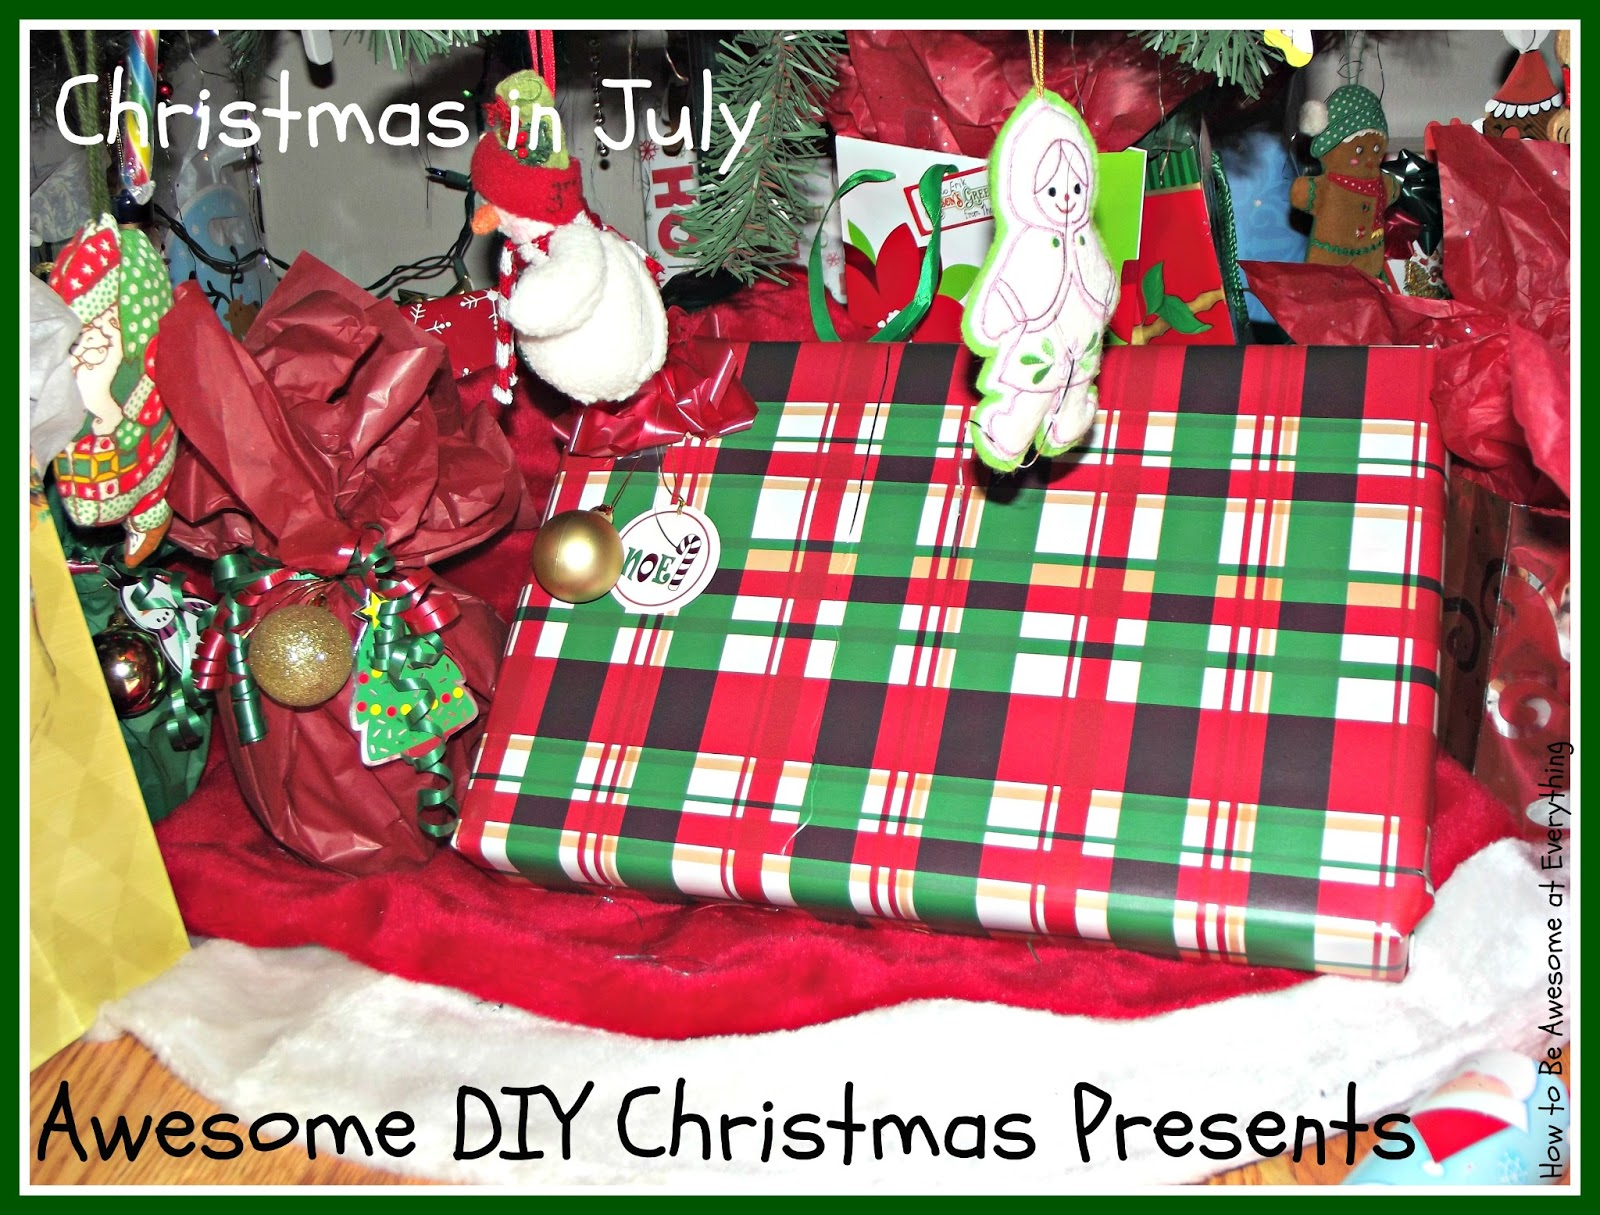 How To Be Awesome At Everything: Awesome DIY Christmas